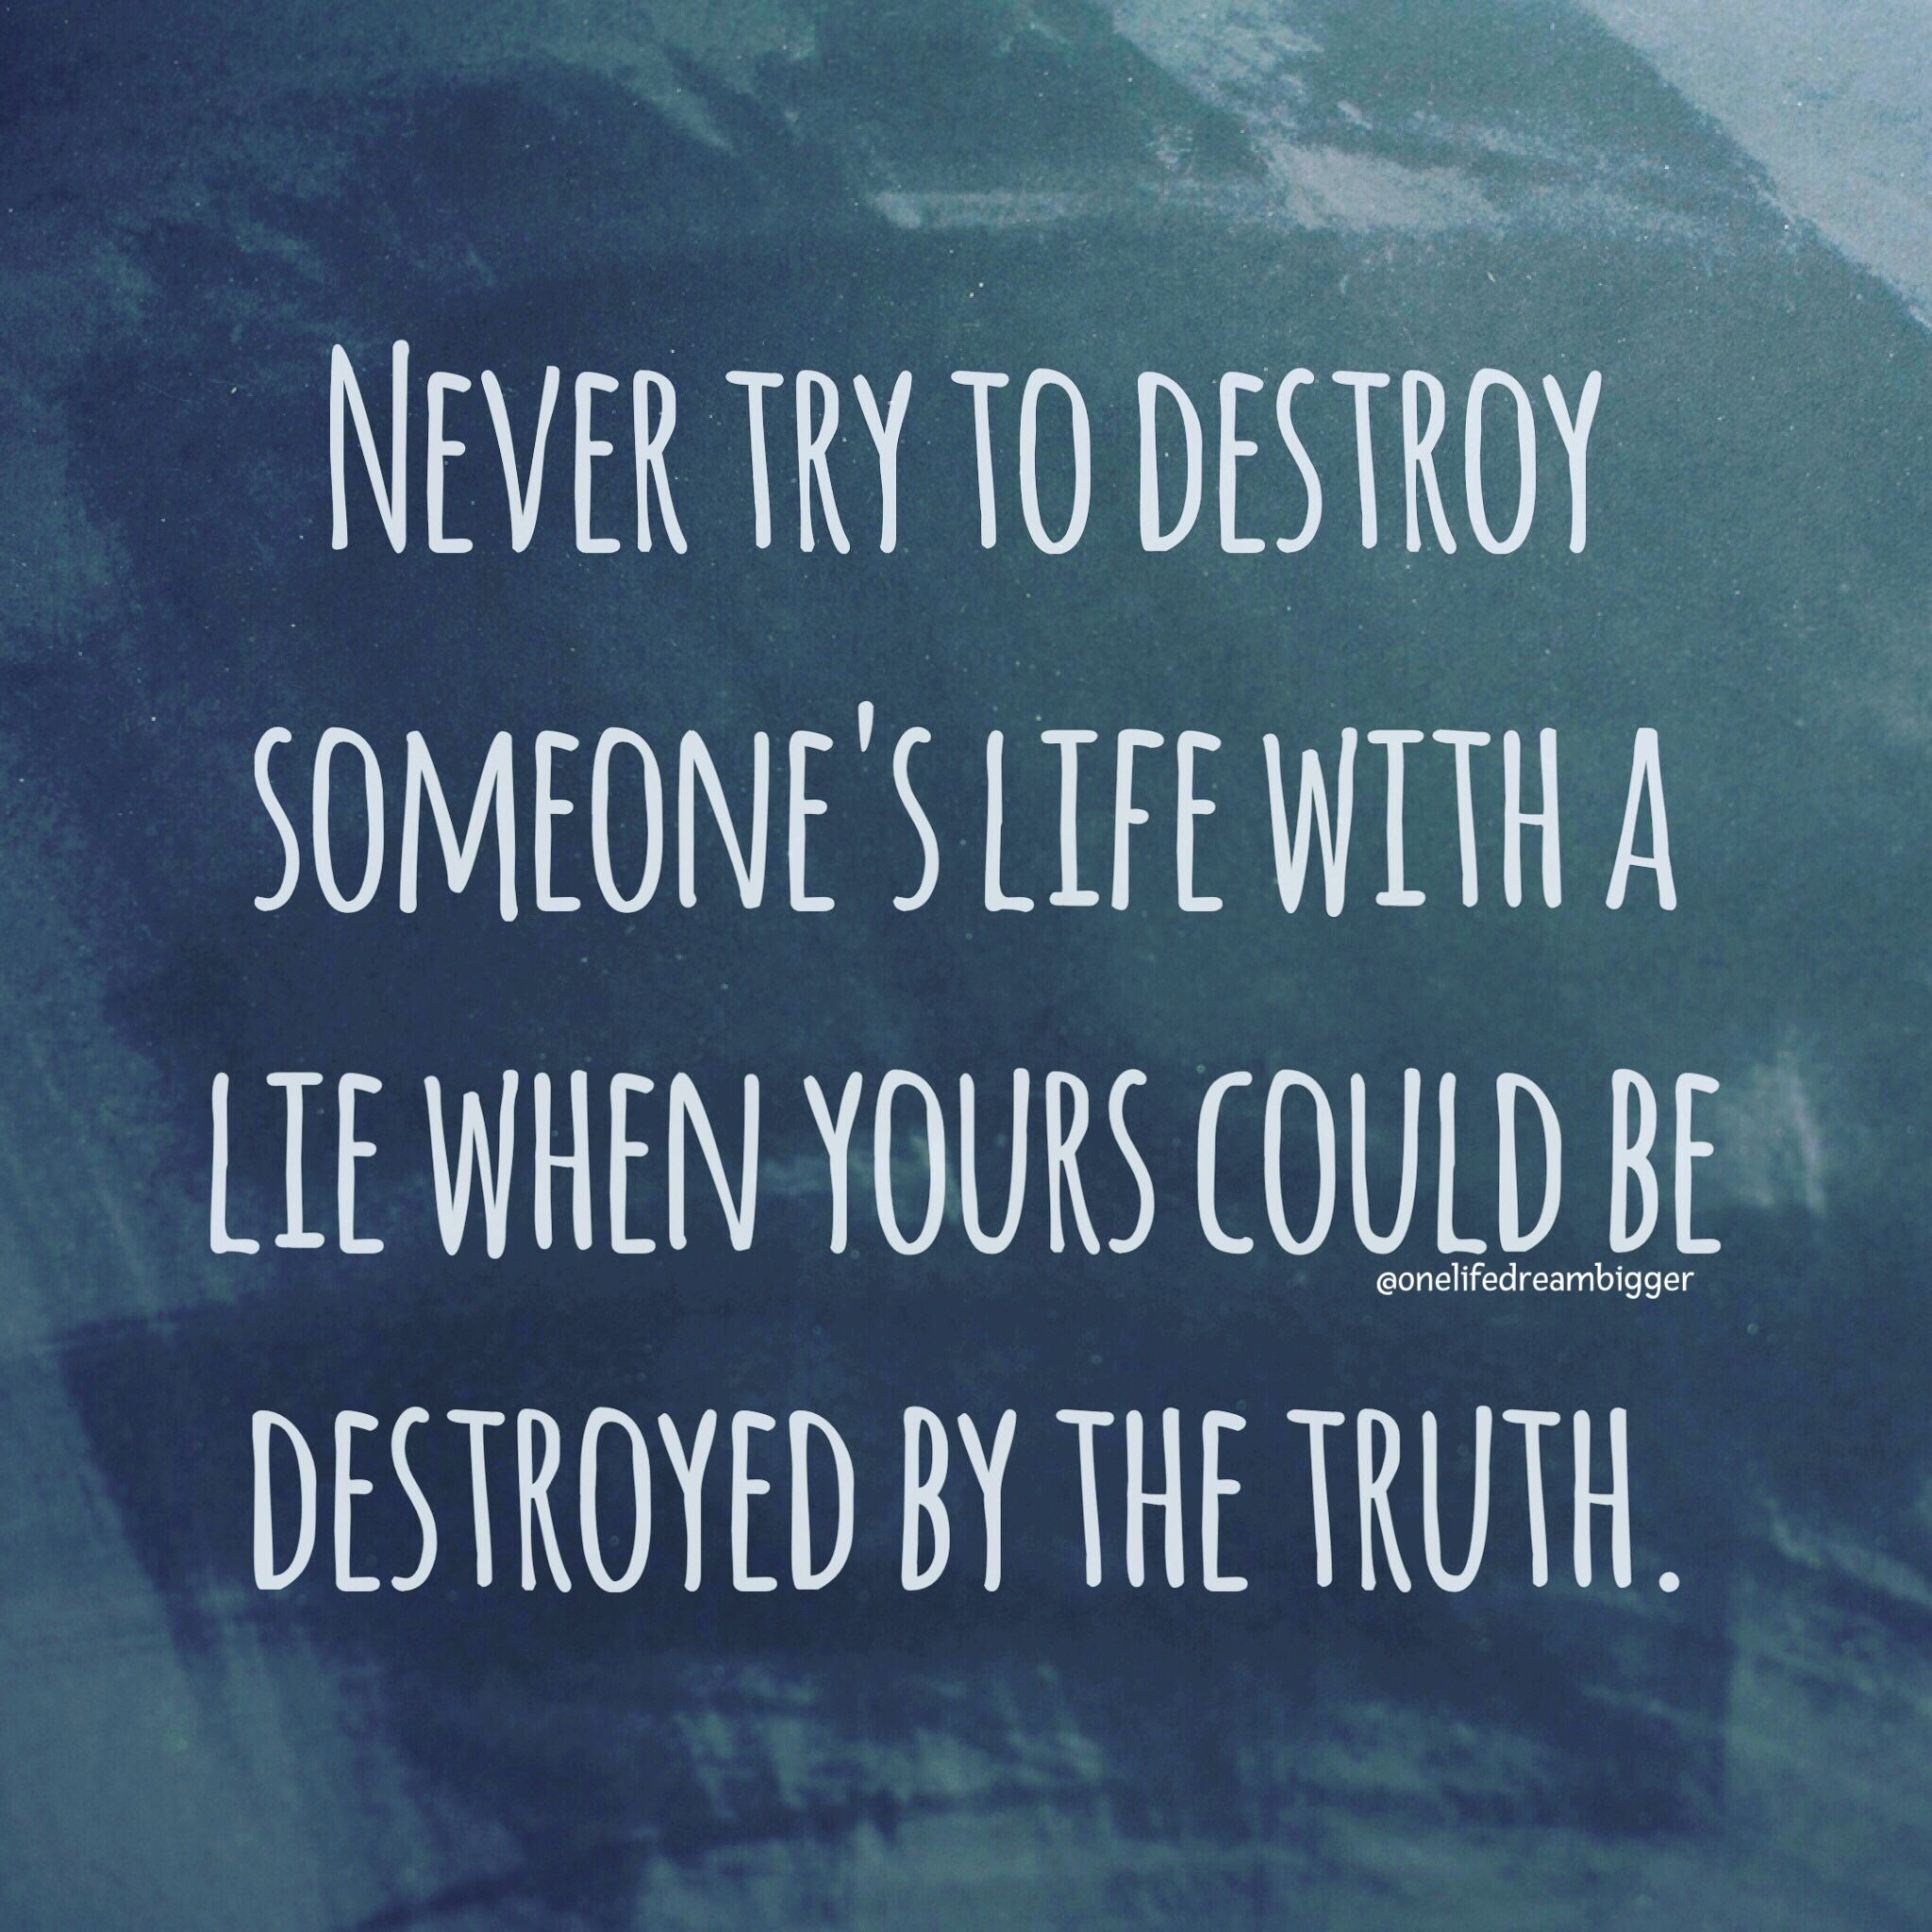 Careful With The Lies Truth Always Prevails Quotes Quotes